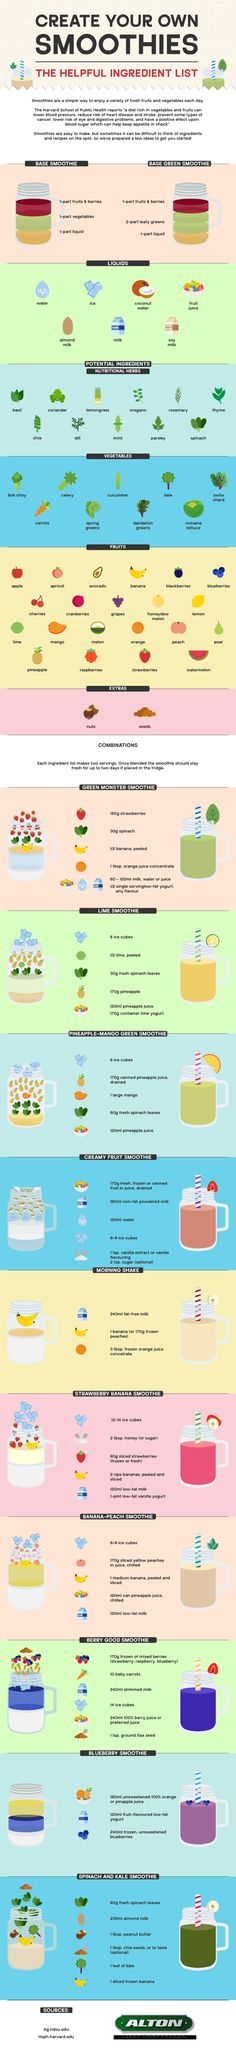 Here's Your Ultimate DIY Healthy Smoothie Guide Homemade Smoothies, Best Smoothie Recipes, Good Smoothies, Smoothie Shop, Smoothie Packs, Start The Day, Pick Me Up, Fruits And Veggies, Vitamins